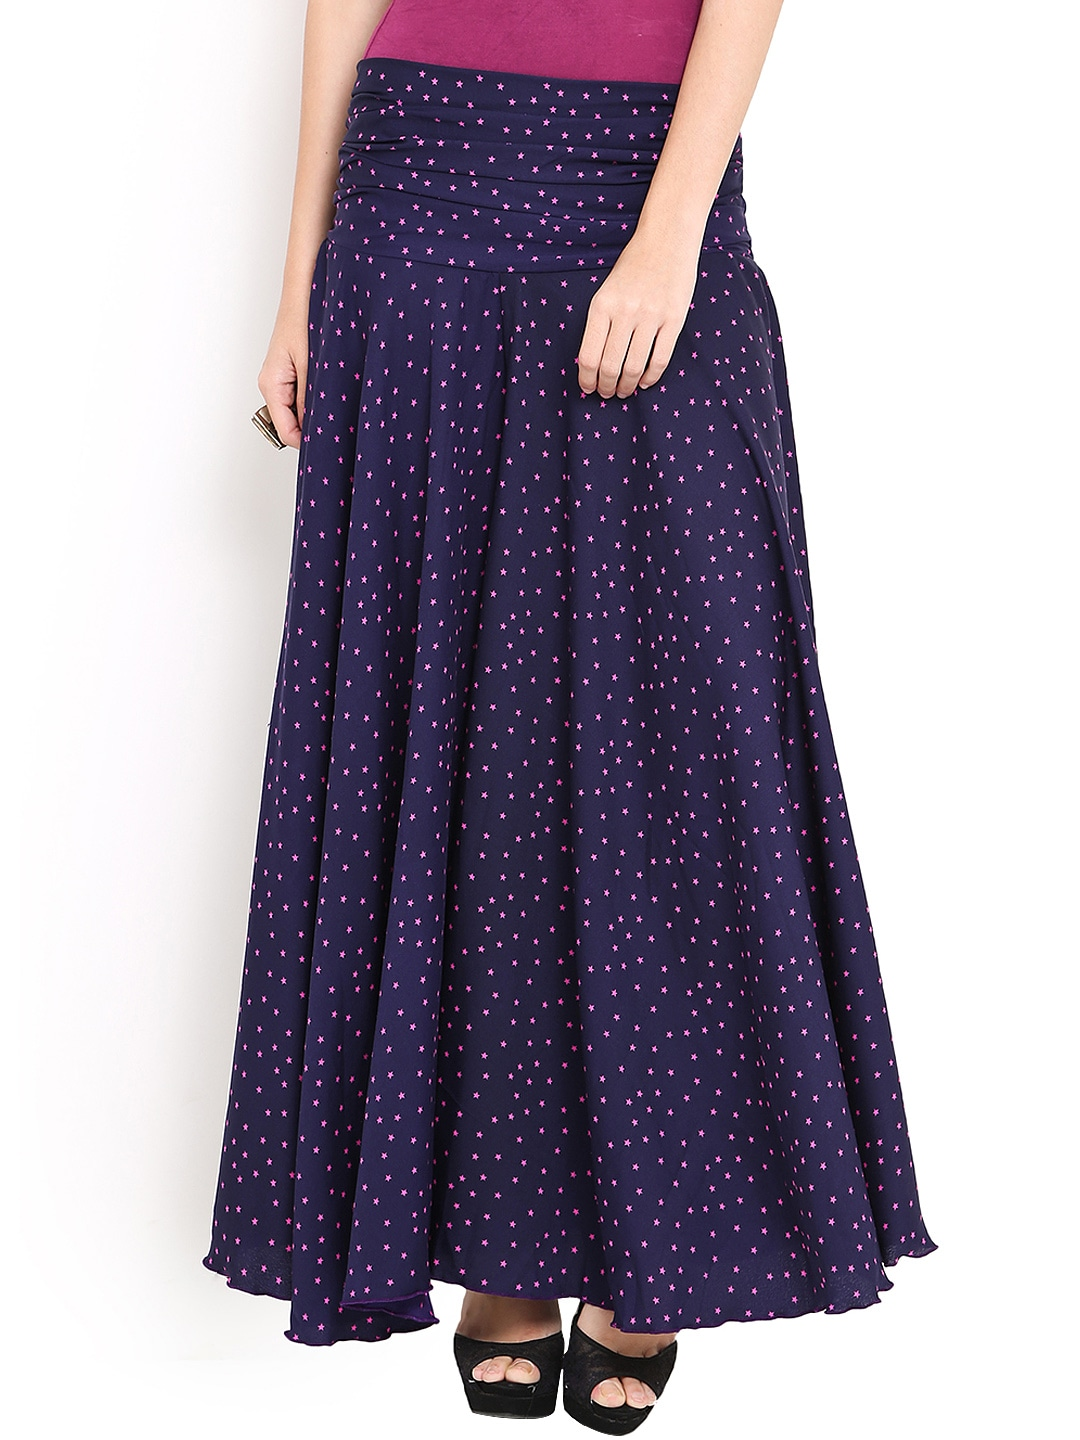 f7d40d64c80 Palazzos - Buy Palazzo Pants Online for Women